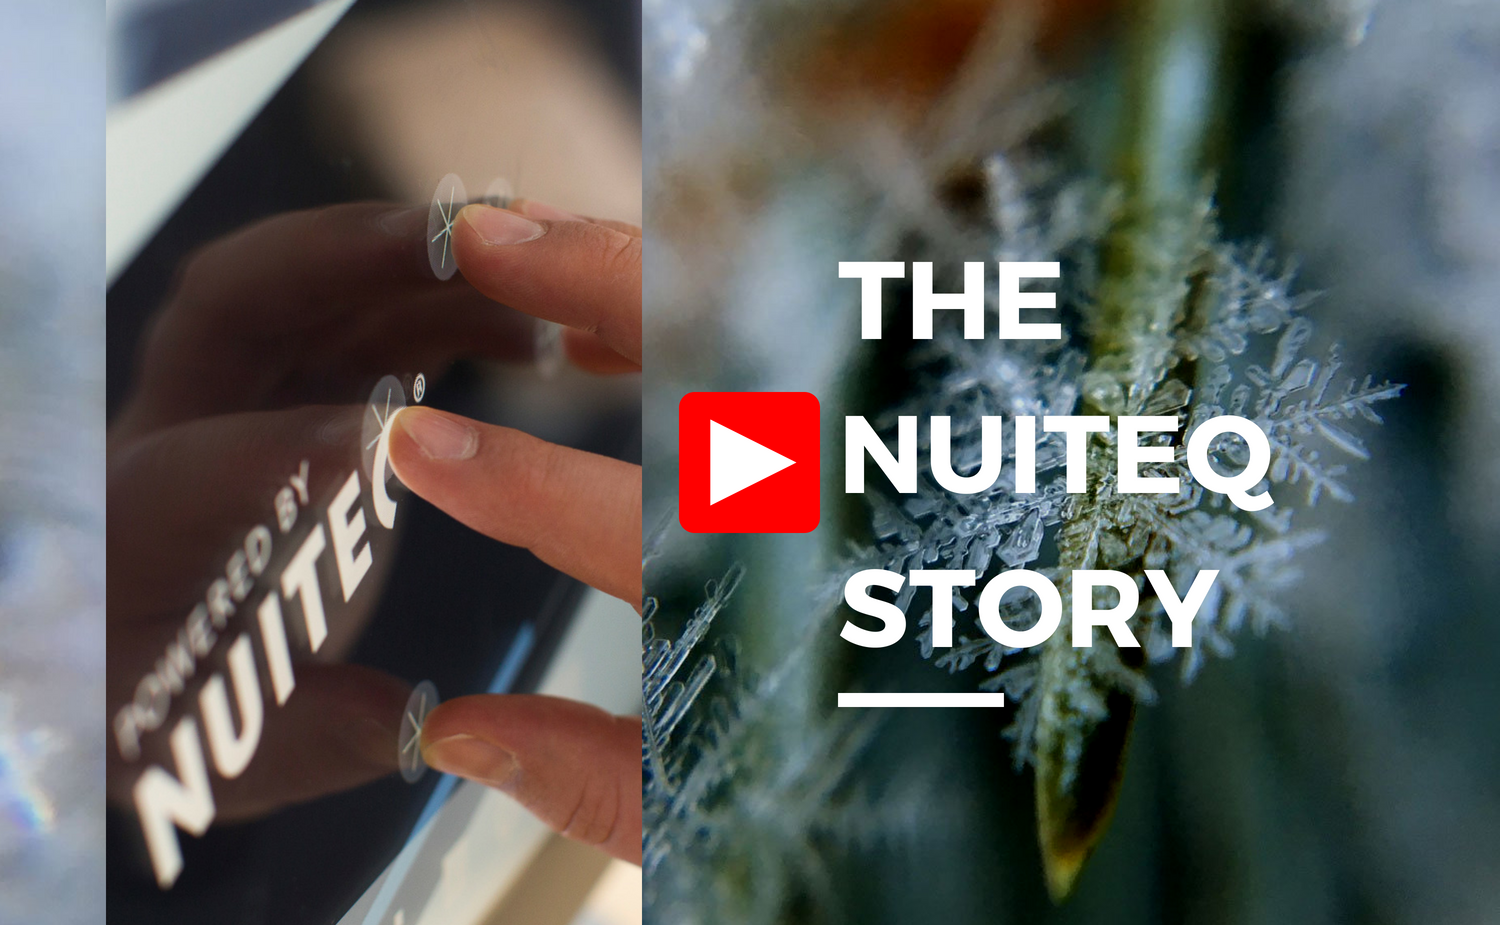 Nuiteq story video thumbnail